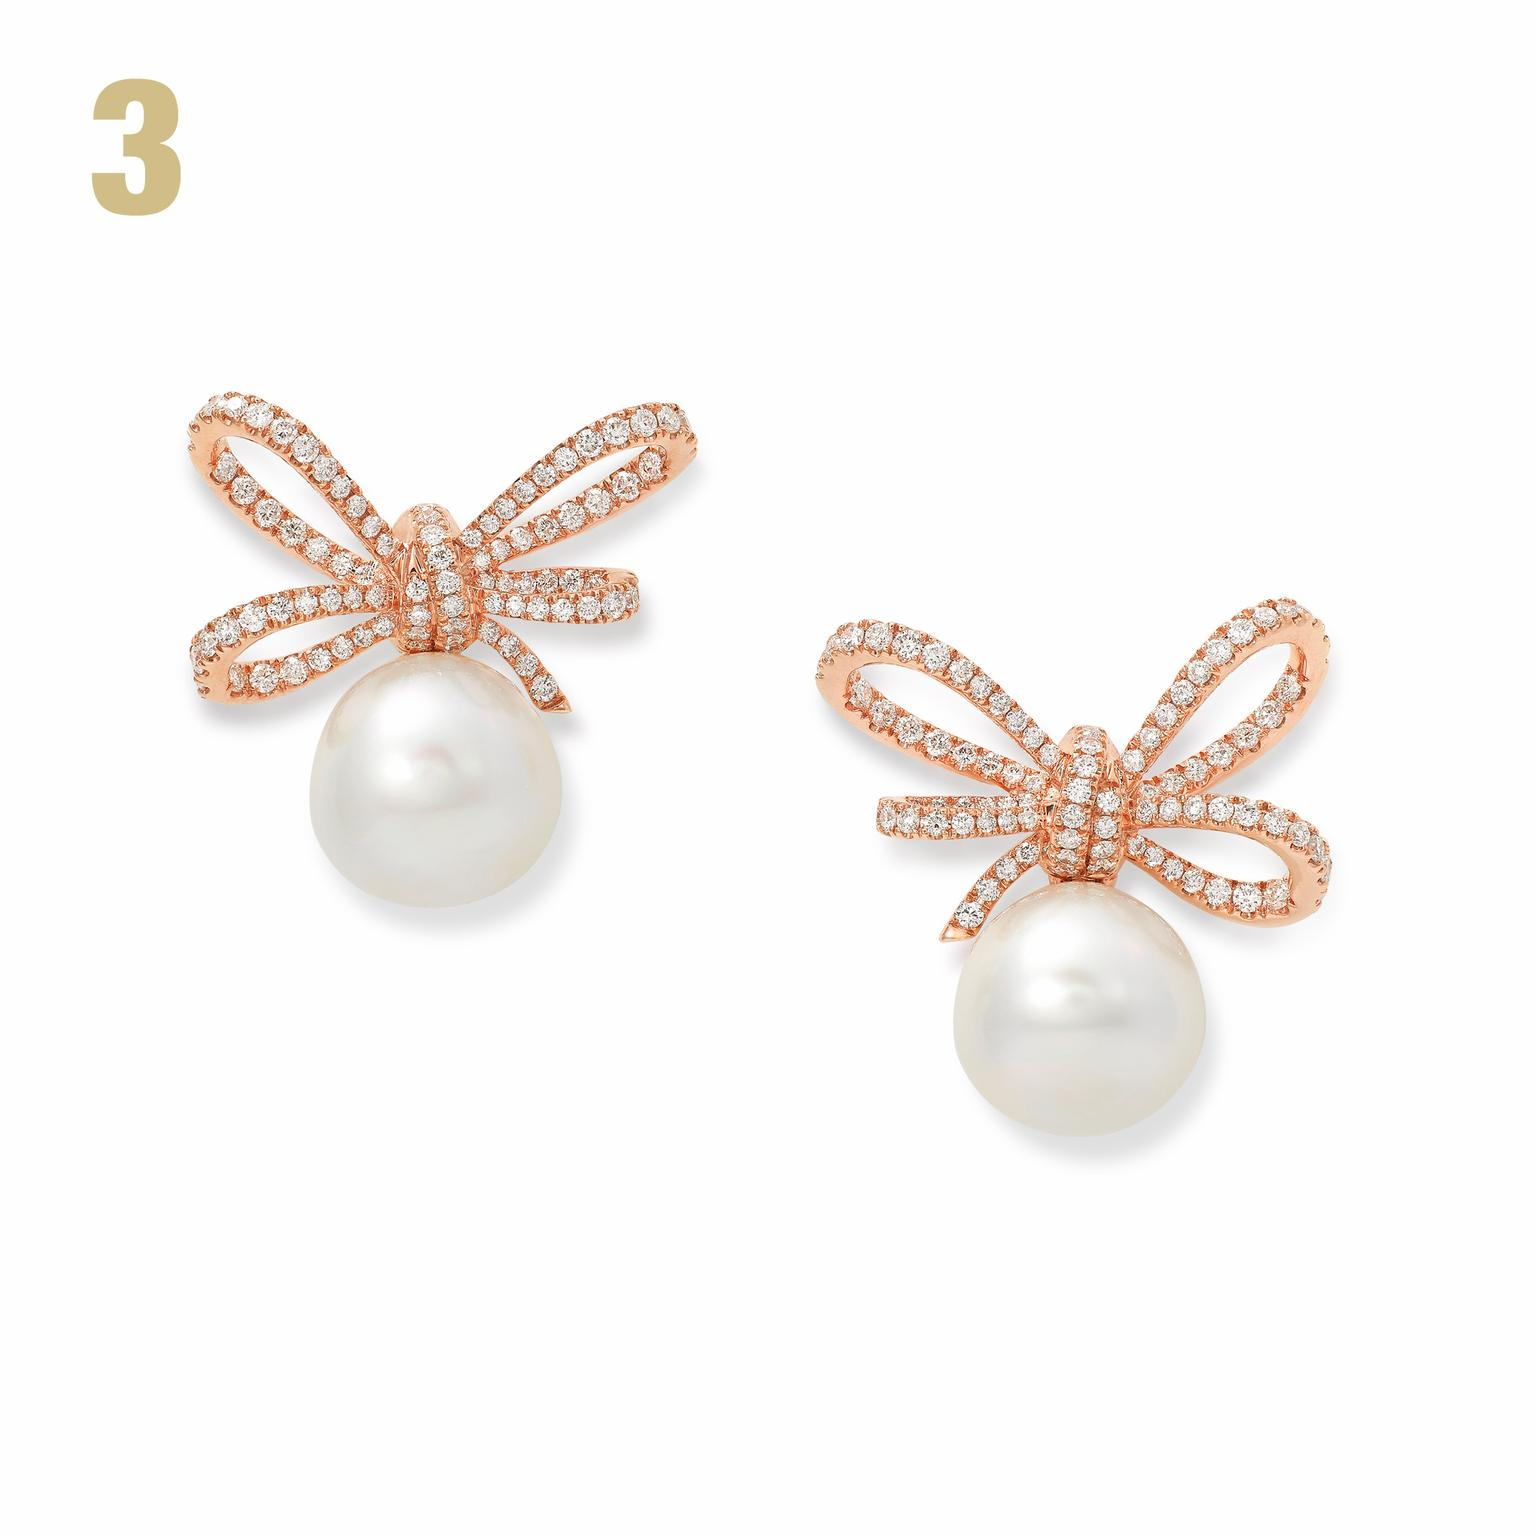 Lyla s Bow earrings in rose gold diamonds and South Sea pearls